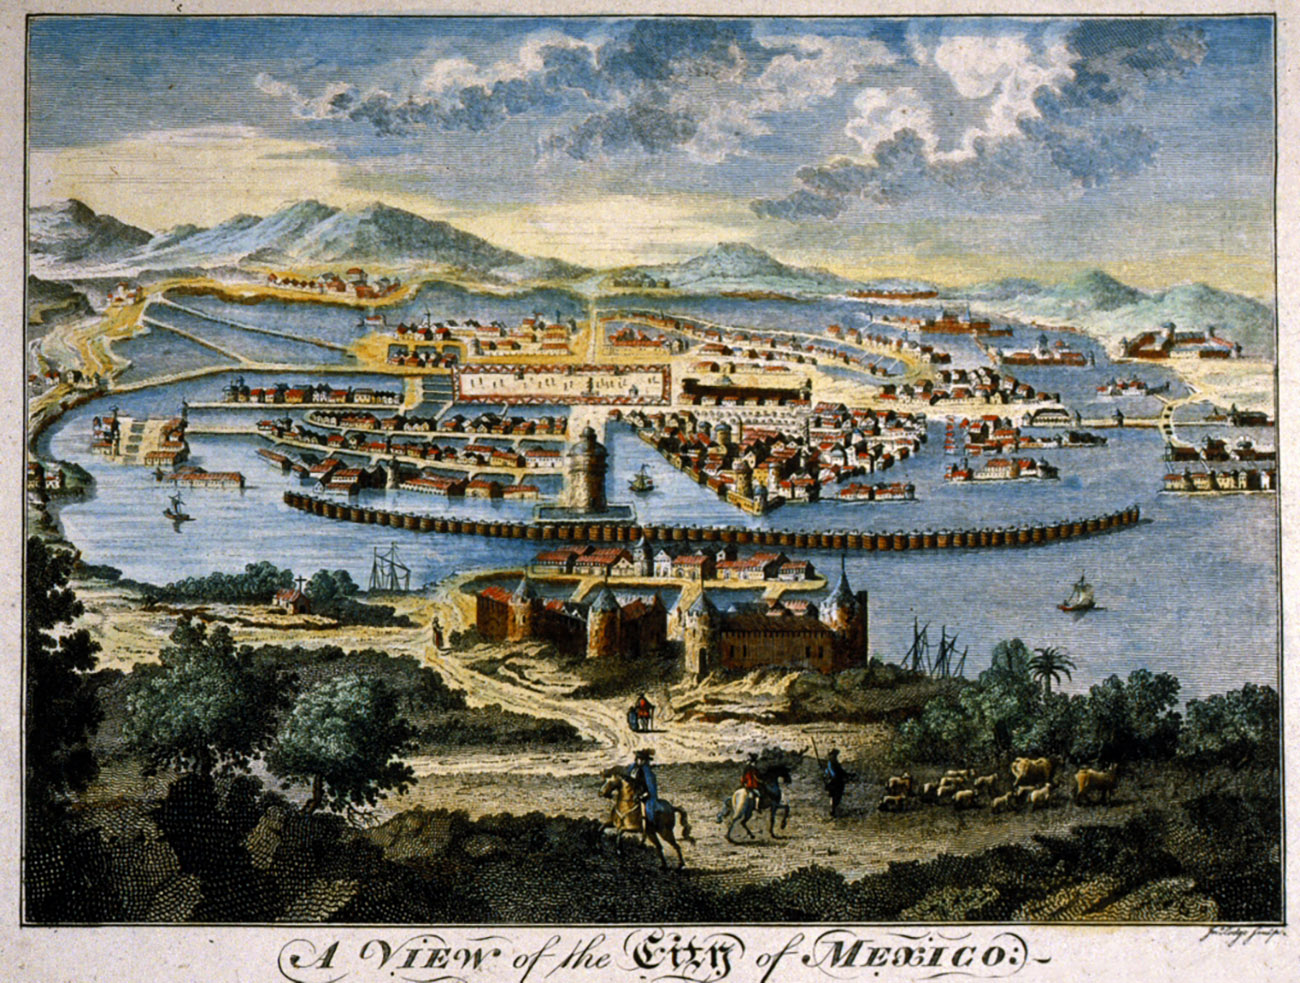 This drawing of Mexico City circa 1778 shows red-roofed buildings surrounding a large plaza, all built on canals in a large lake basin. In the background are mountains; in the foreground are buildings with turrets and a port.